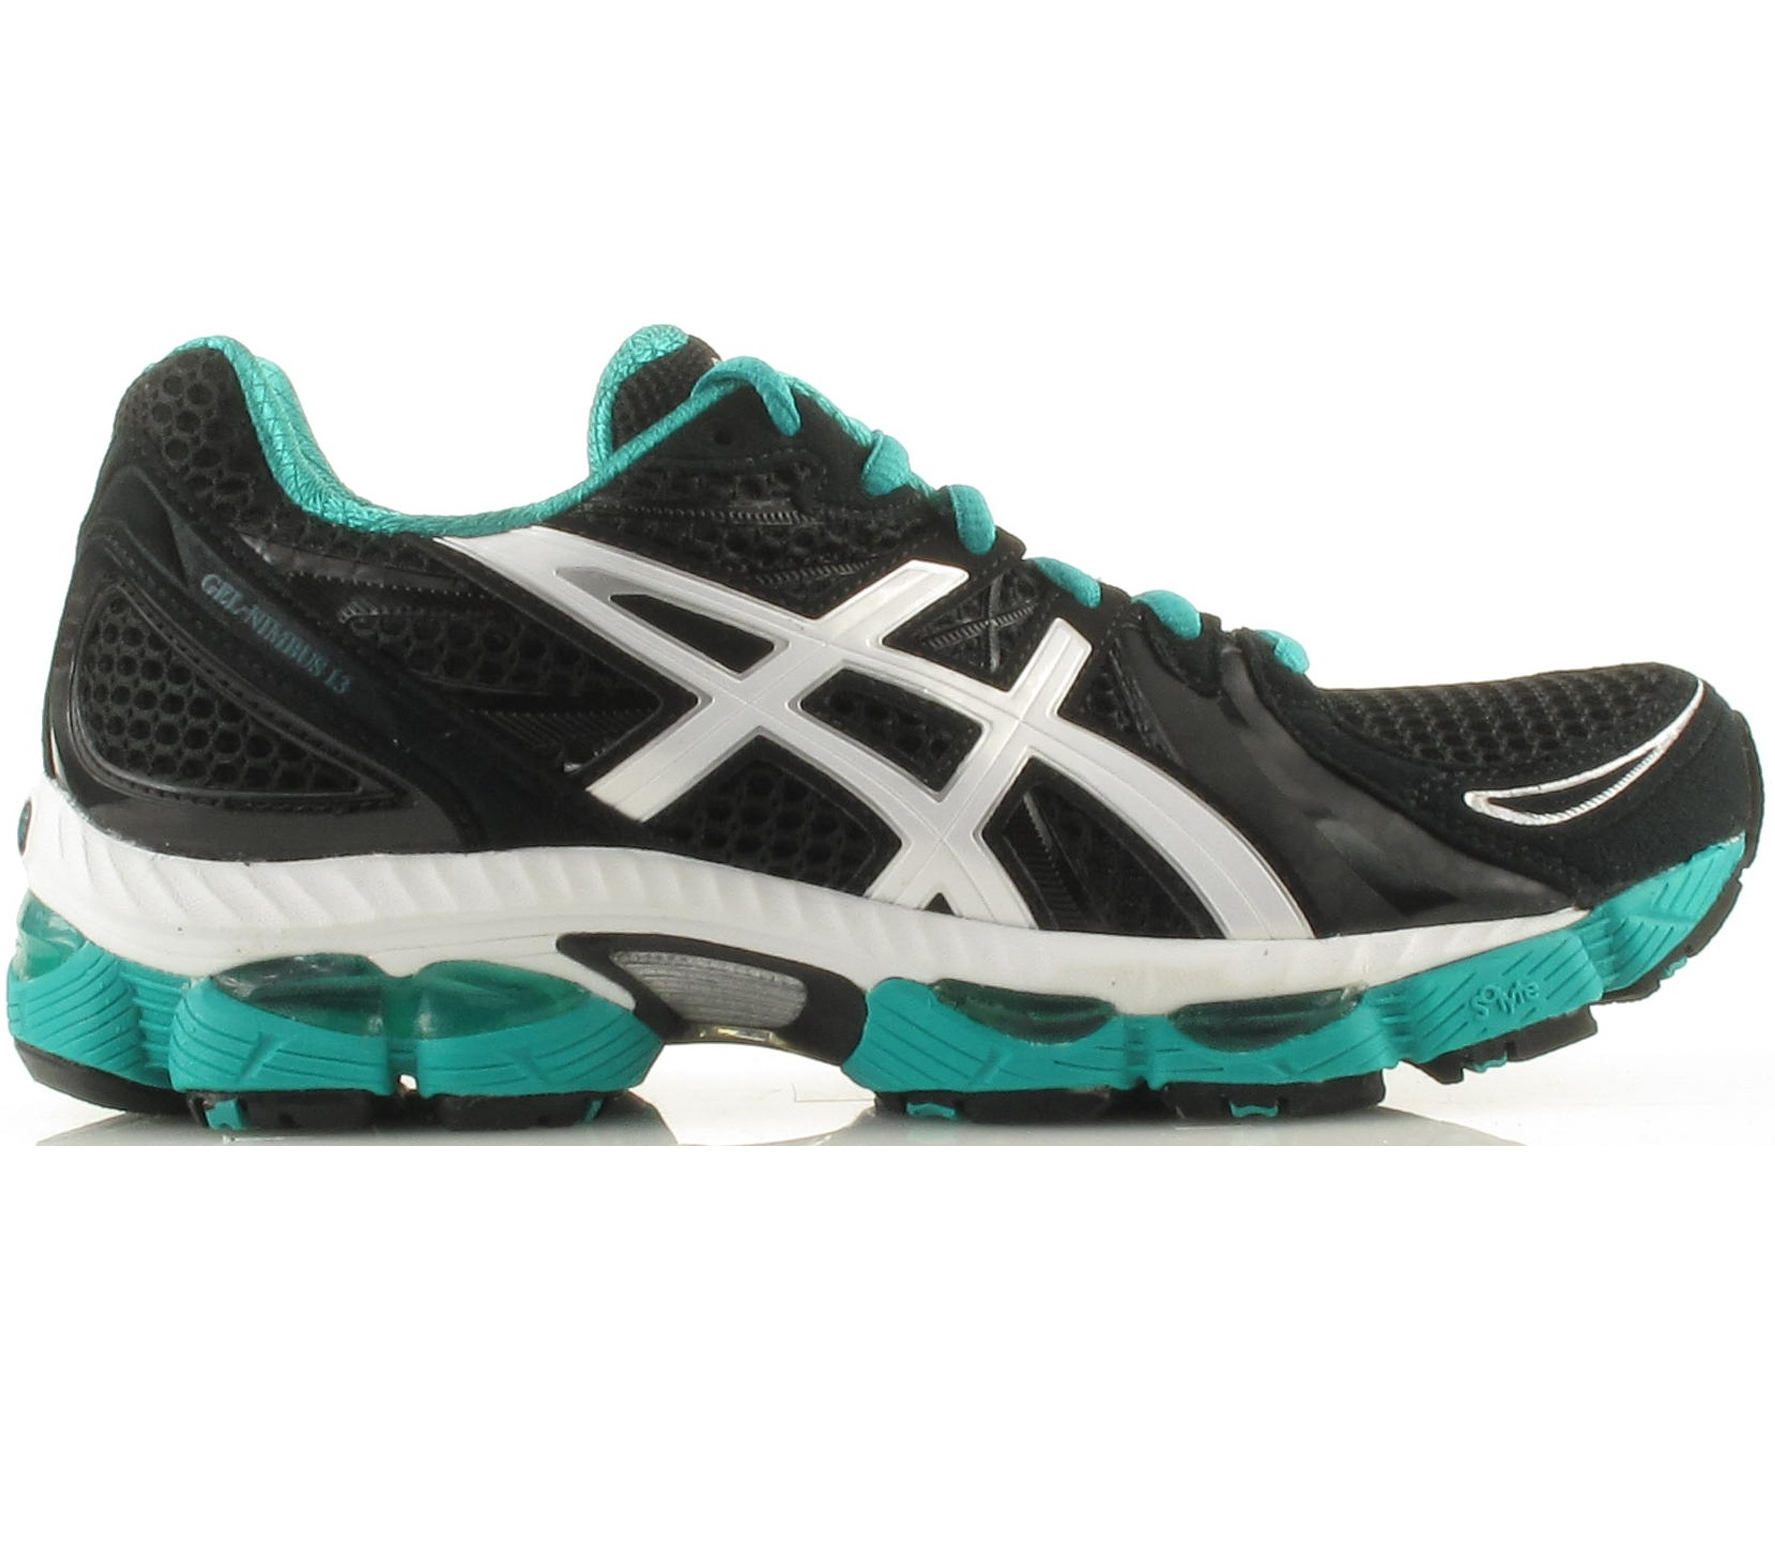 Home · Shoes · Running Shoes · Stability Running Shoes. Asics Women's